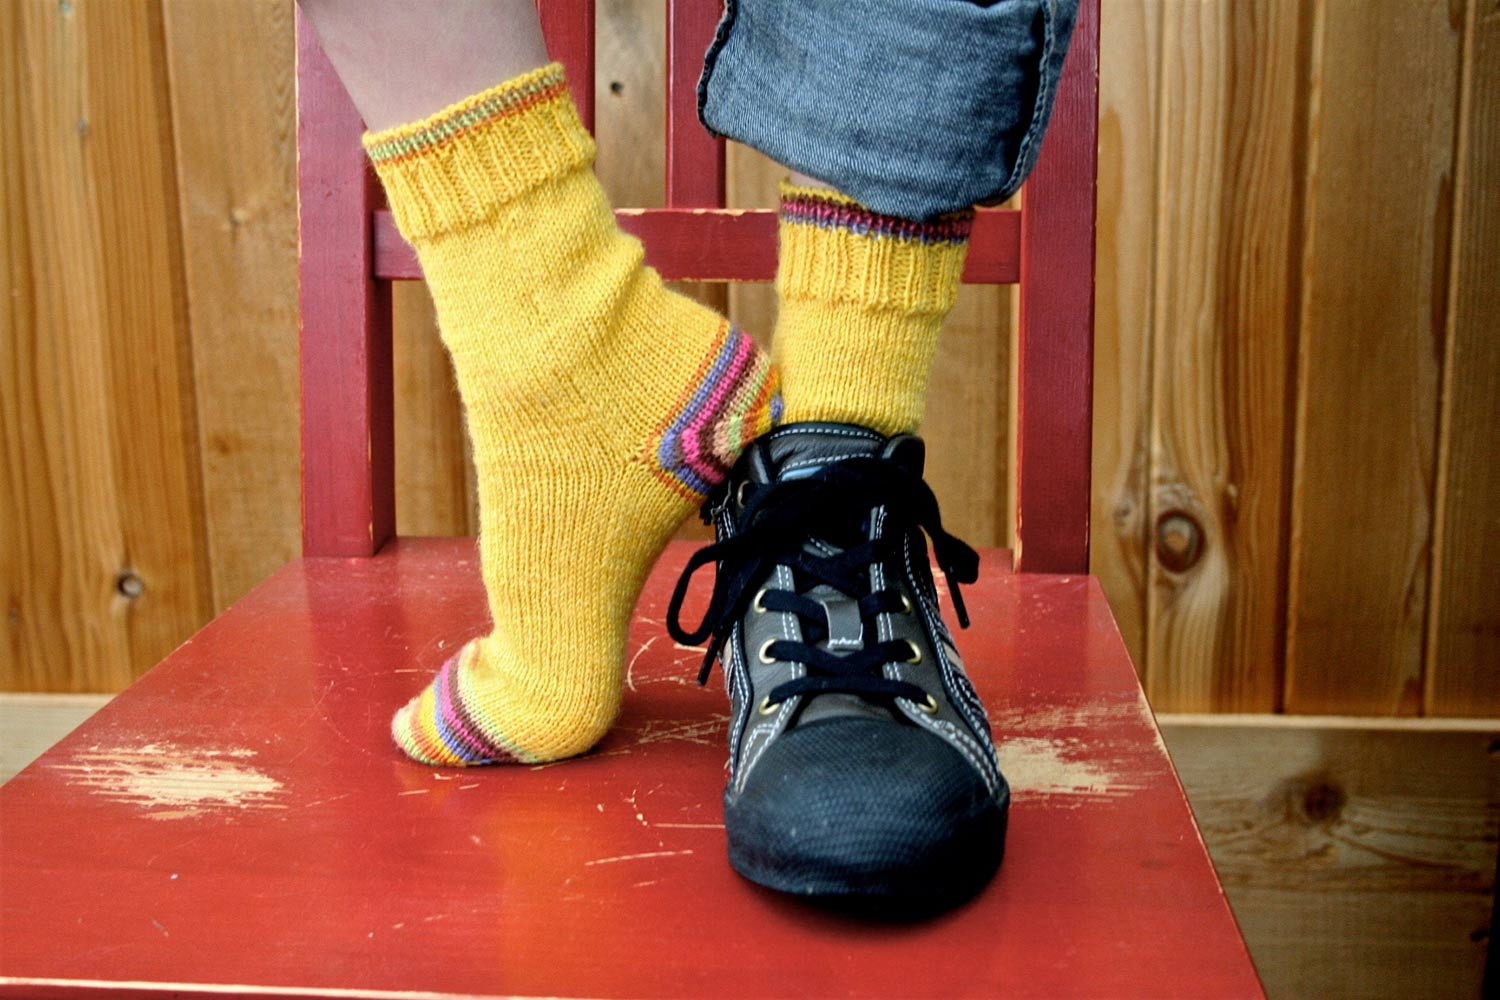 Feet standing on a chair wearing yellow hand knit socks worked toe up with a stripey heal and toe, modelled with one shoe on and one shoe off.